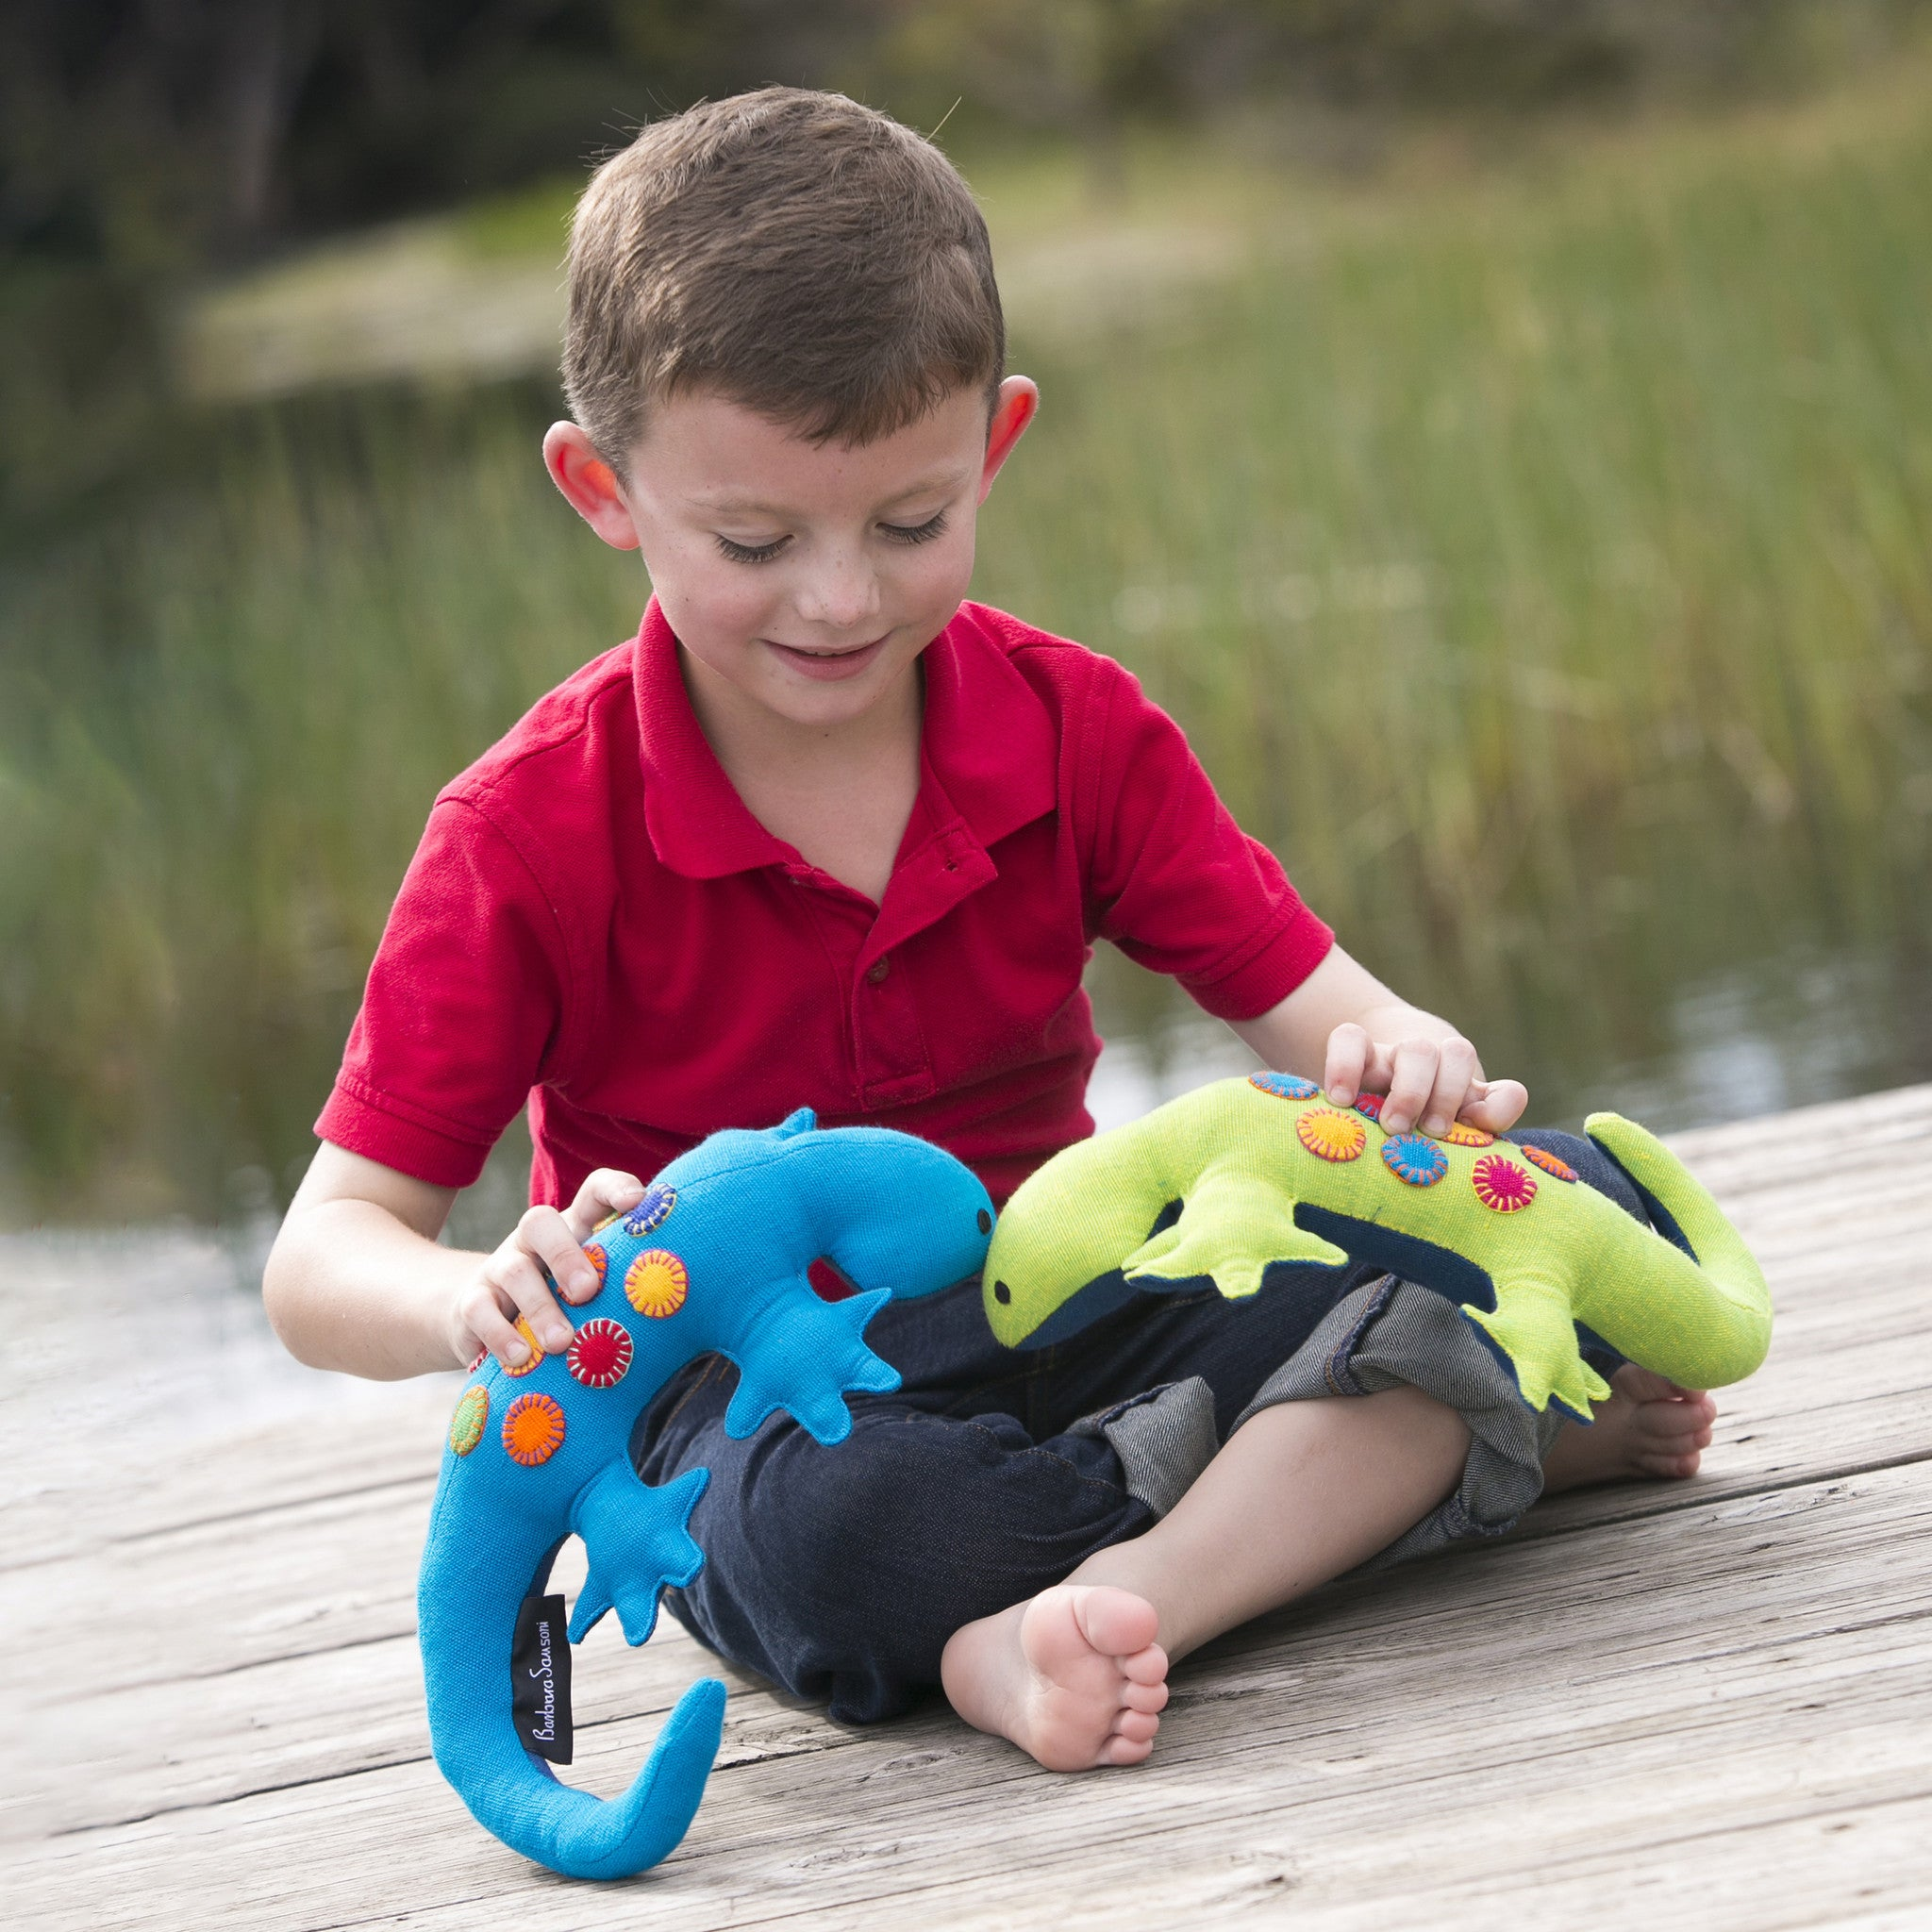 One of a kind lizard toys to play with!